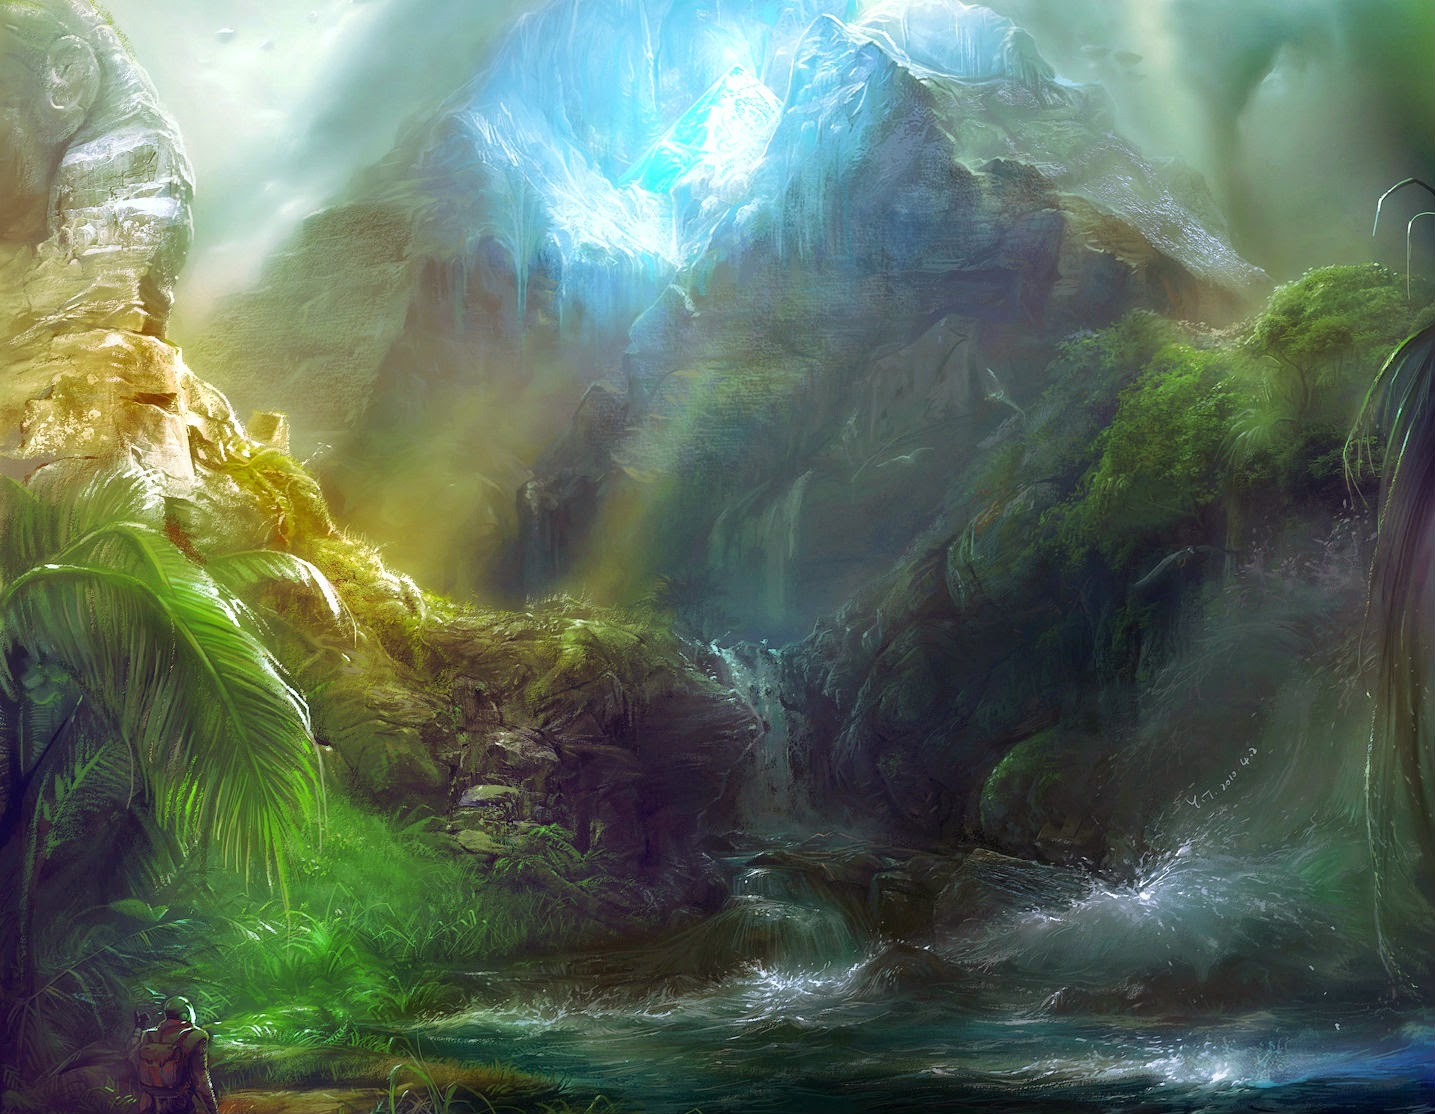 Stunning Hd Fantasy Wallpapers: Hdwallpapers.org.in: Beautiful Fantasy Hd